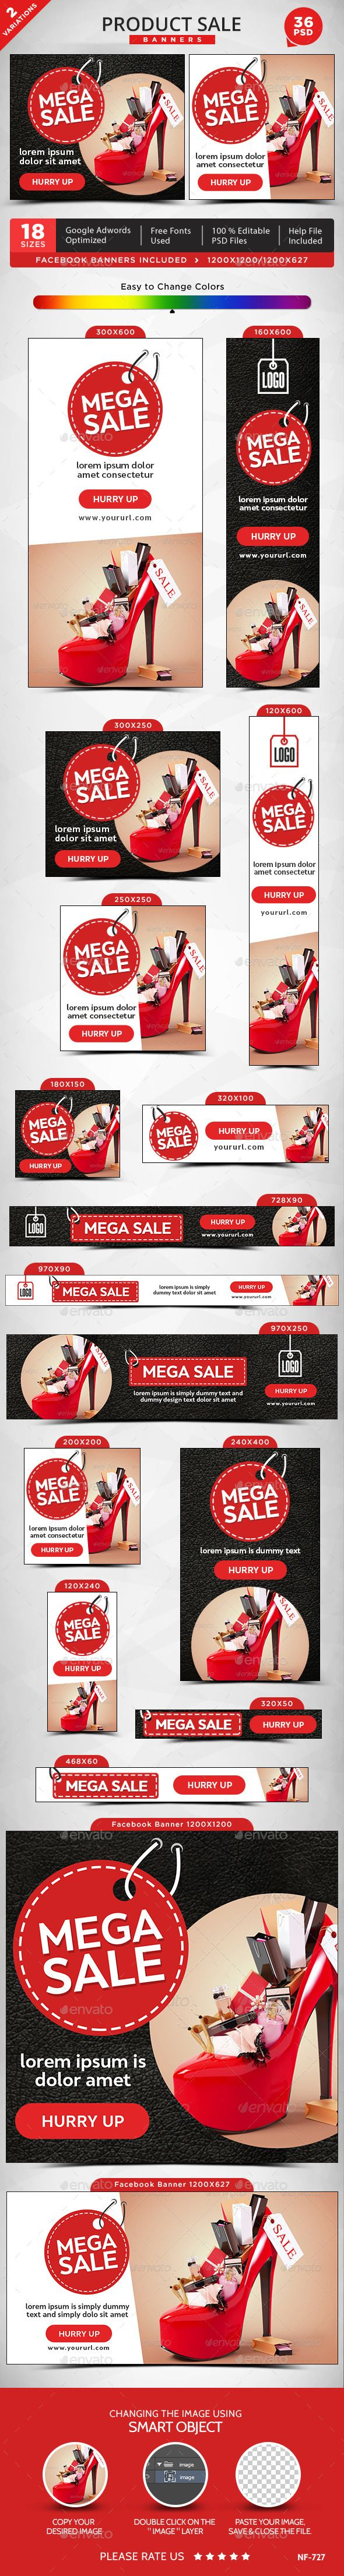 Product Sale Web Banners Template PSD #design #ads Download: http://graphicriver.net/item/product-sale-banners/13274666?ref=ksioks